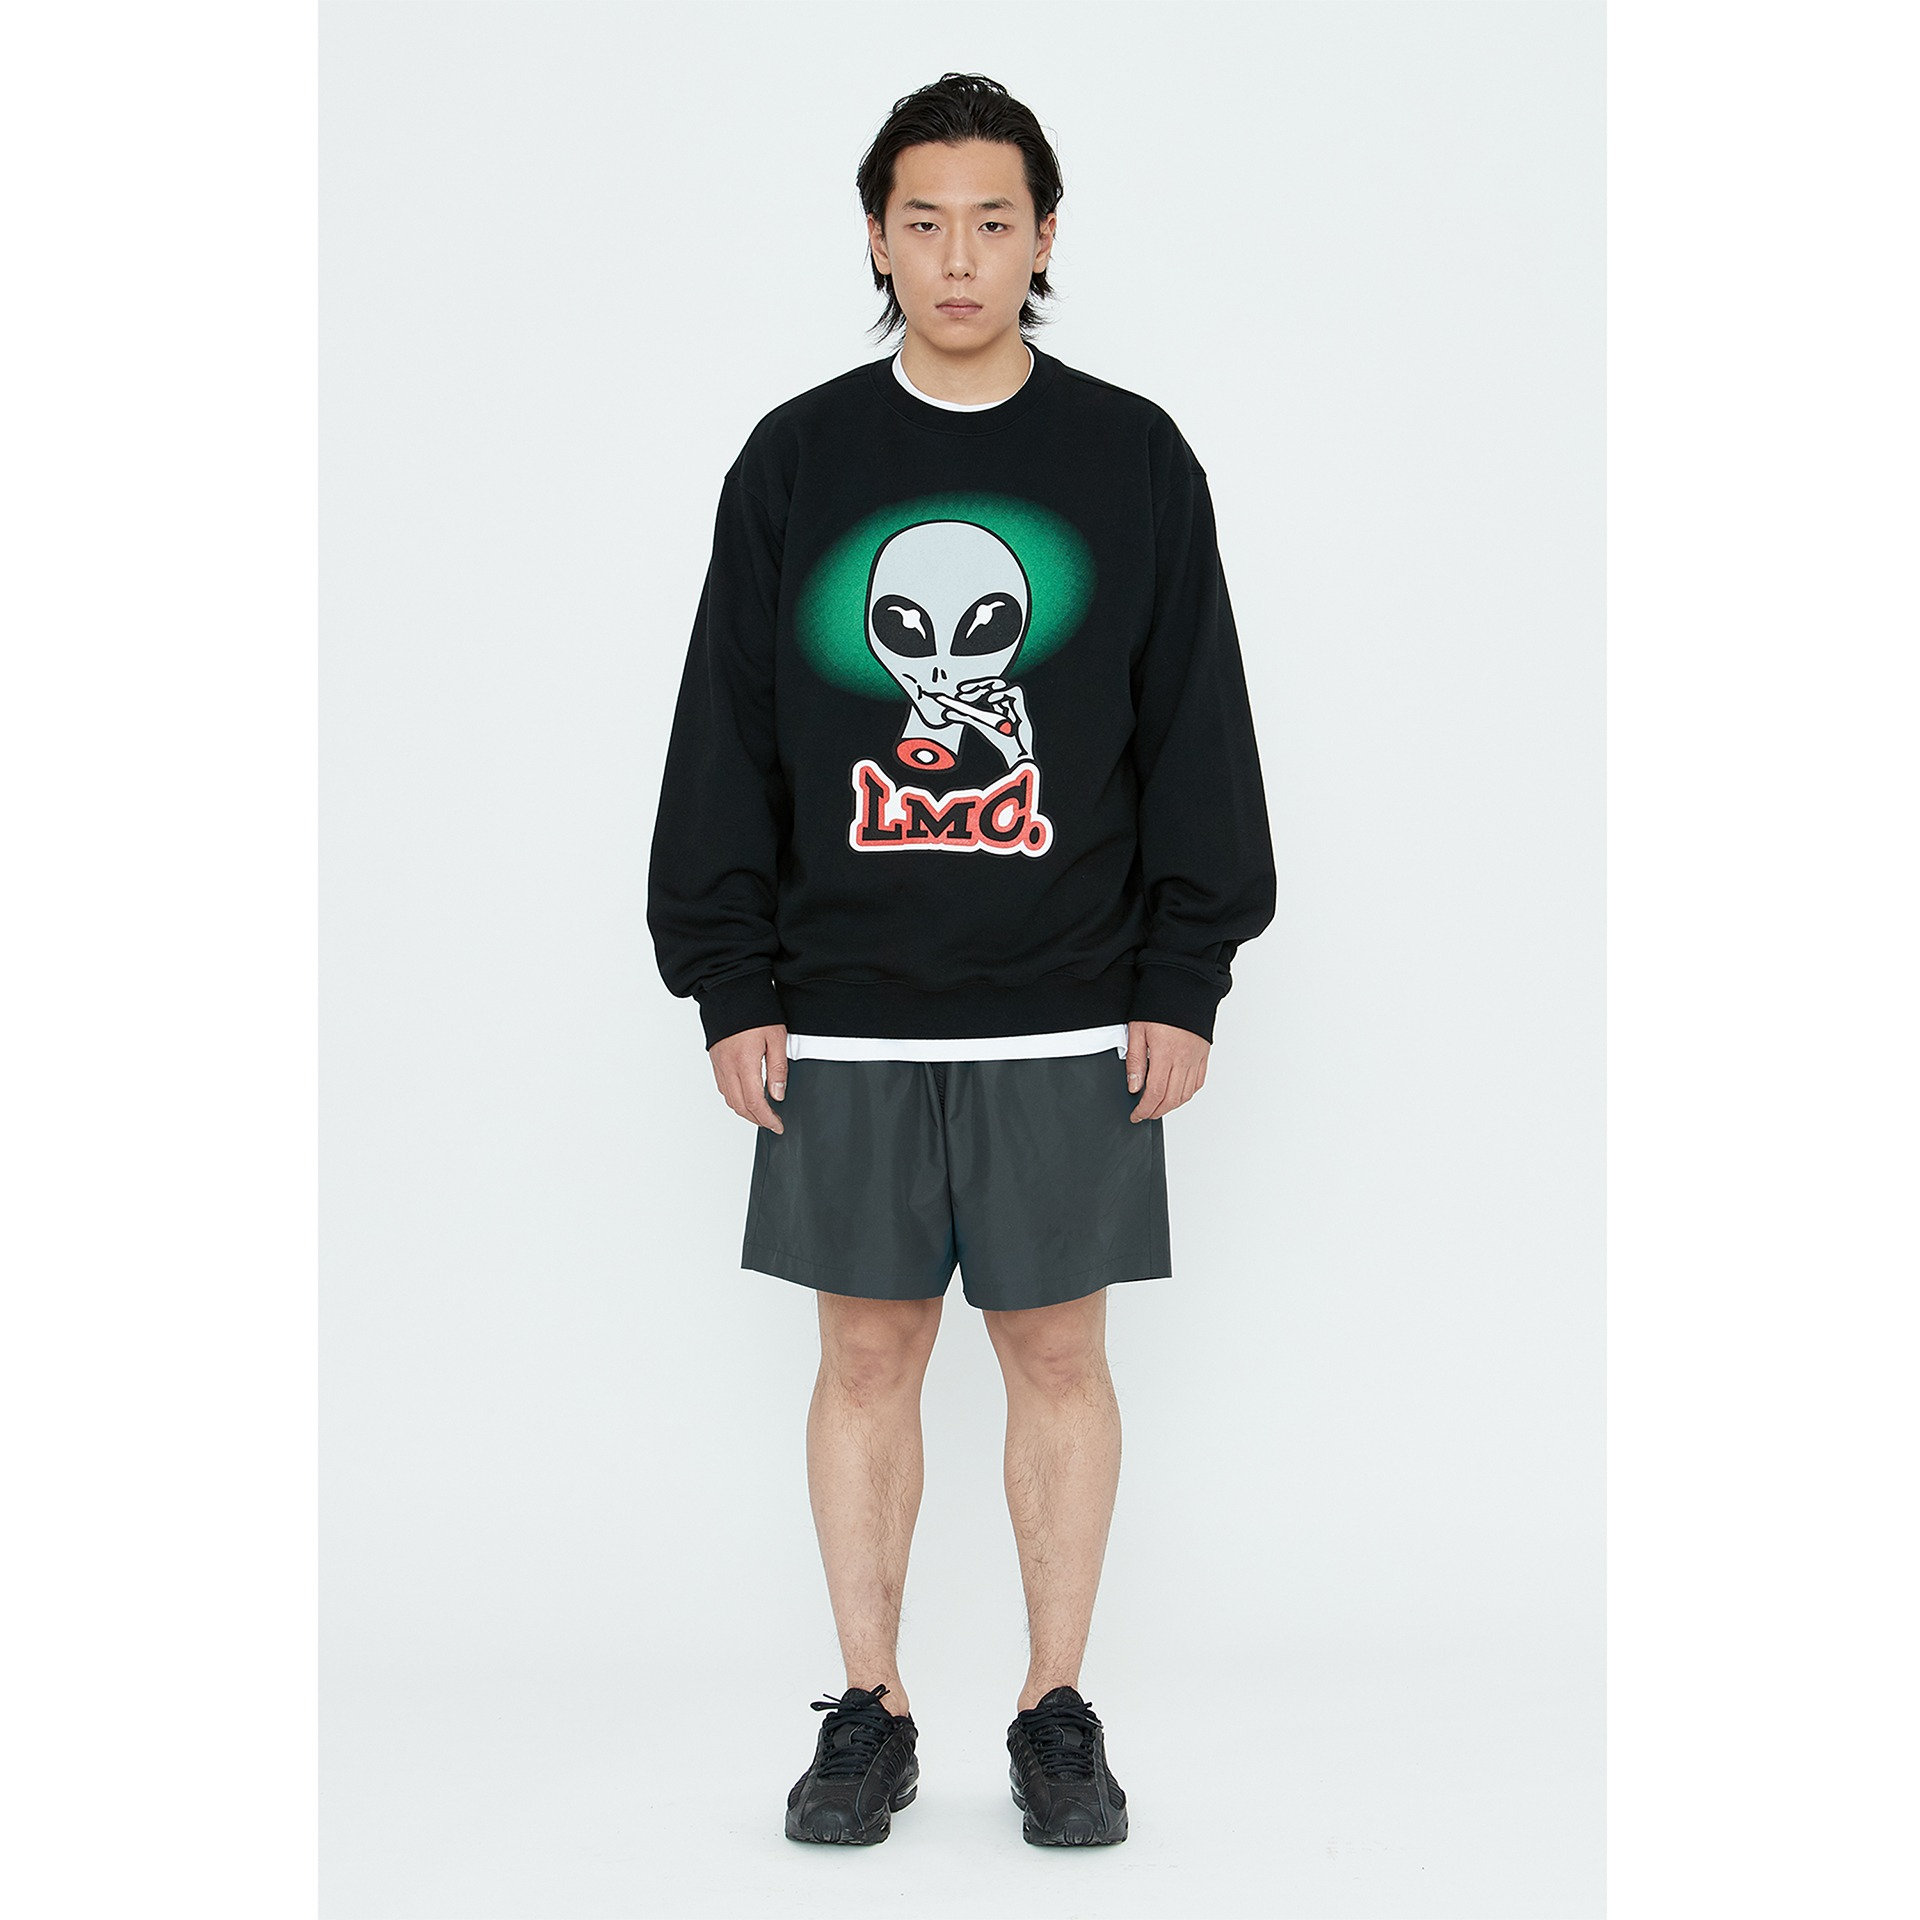 LMC SMOKING ALIEN SWEATSHIRT black